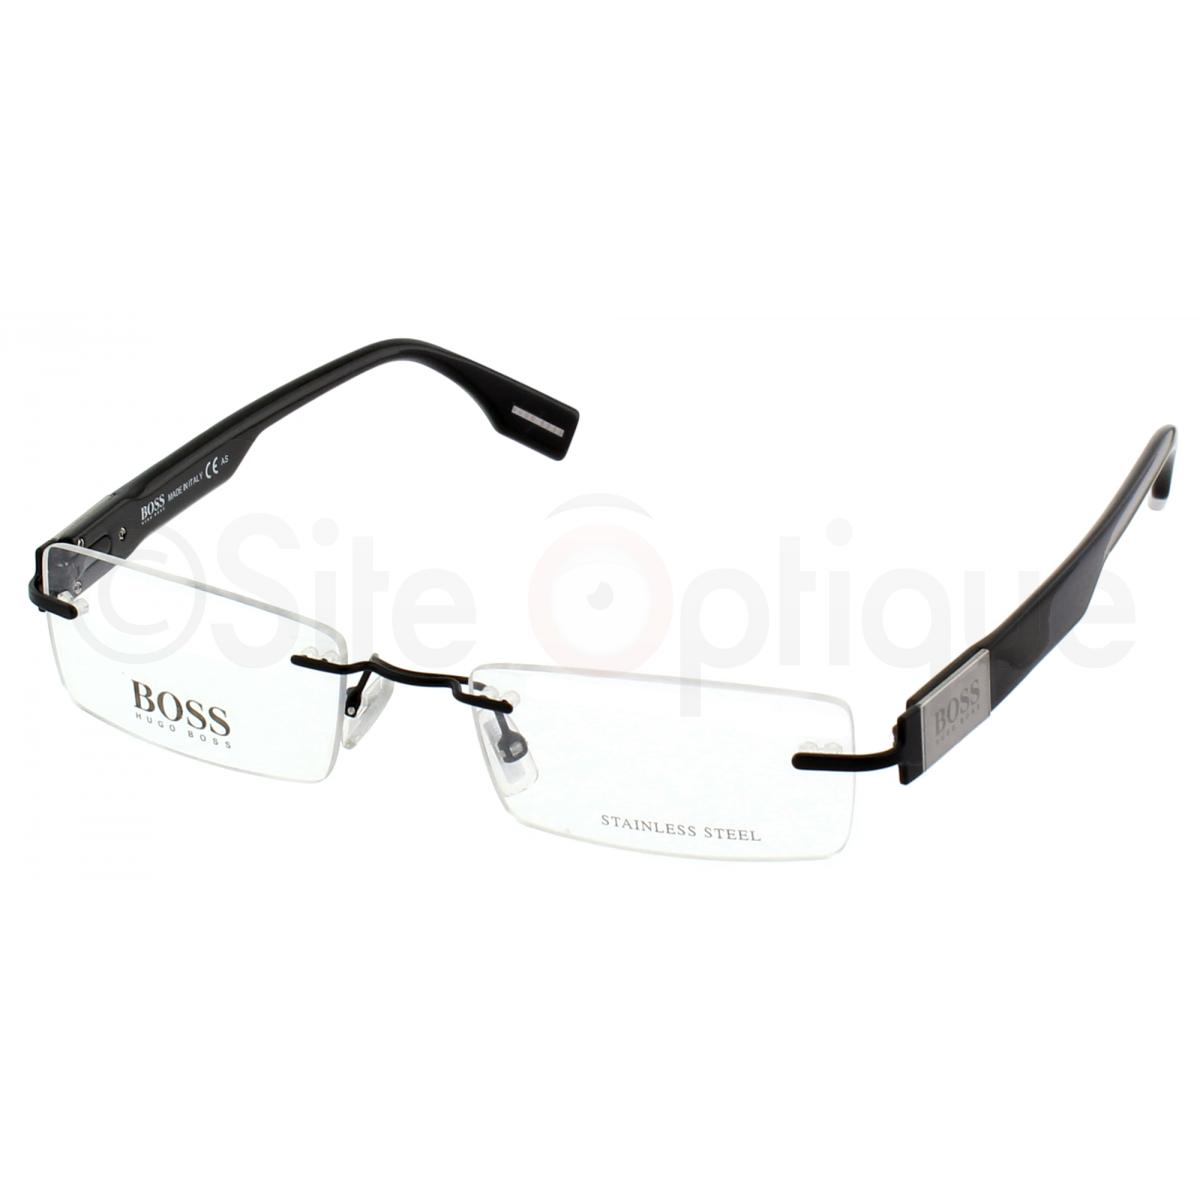 HUGO BOSS - BOSS 0322 – Site optique 1acfbfe6793d